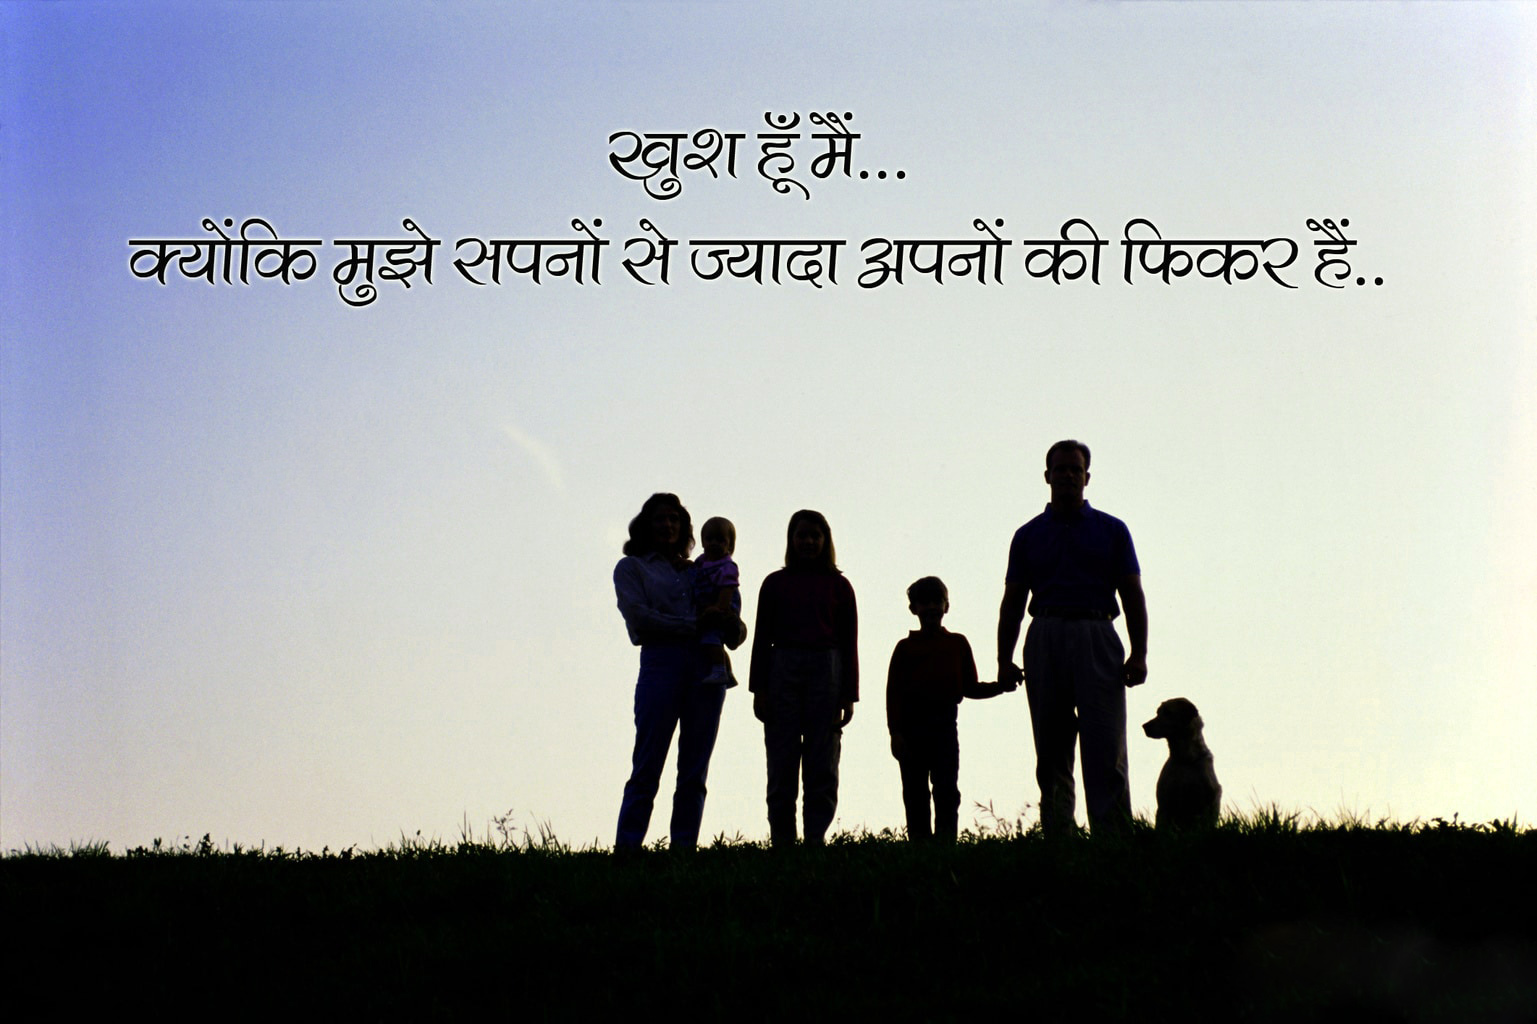 Happy Life Whatsapp Status In Hindi Images Photo Pics Download Happy Life Status In Hindi Images (91)